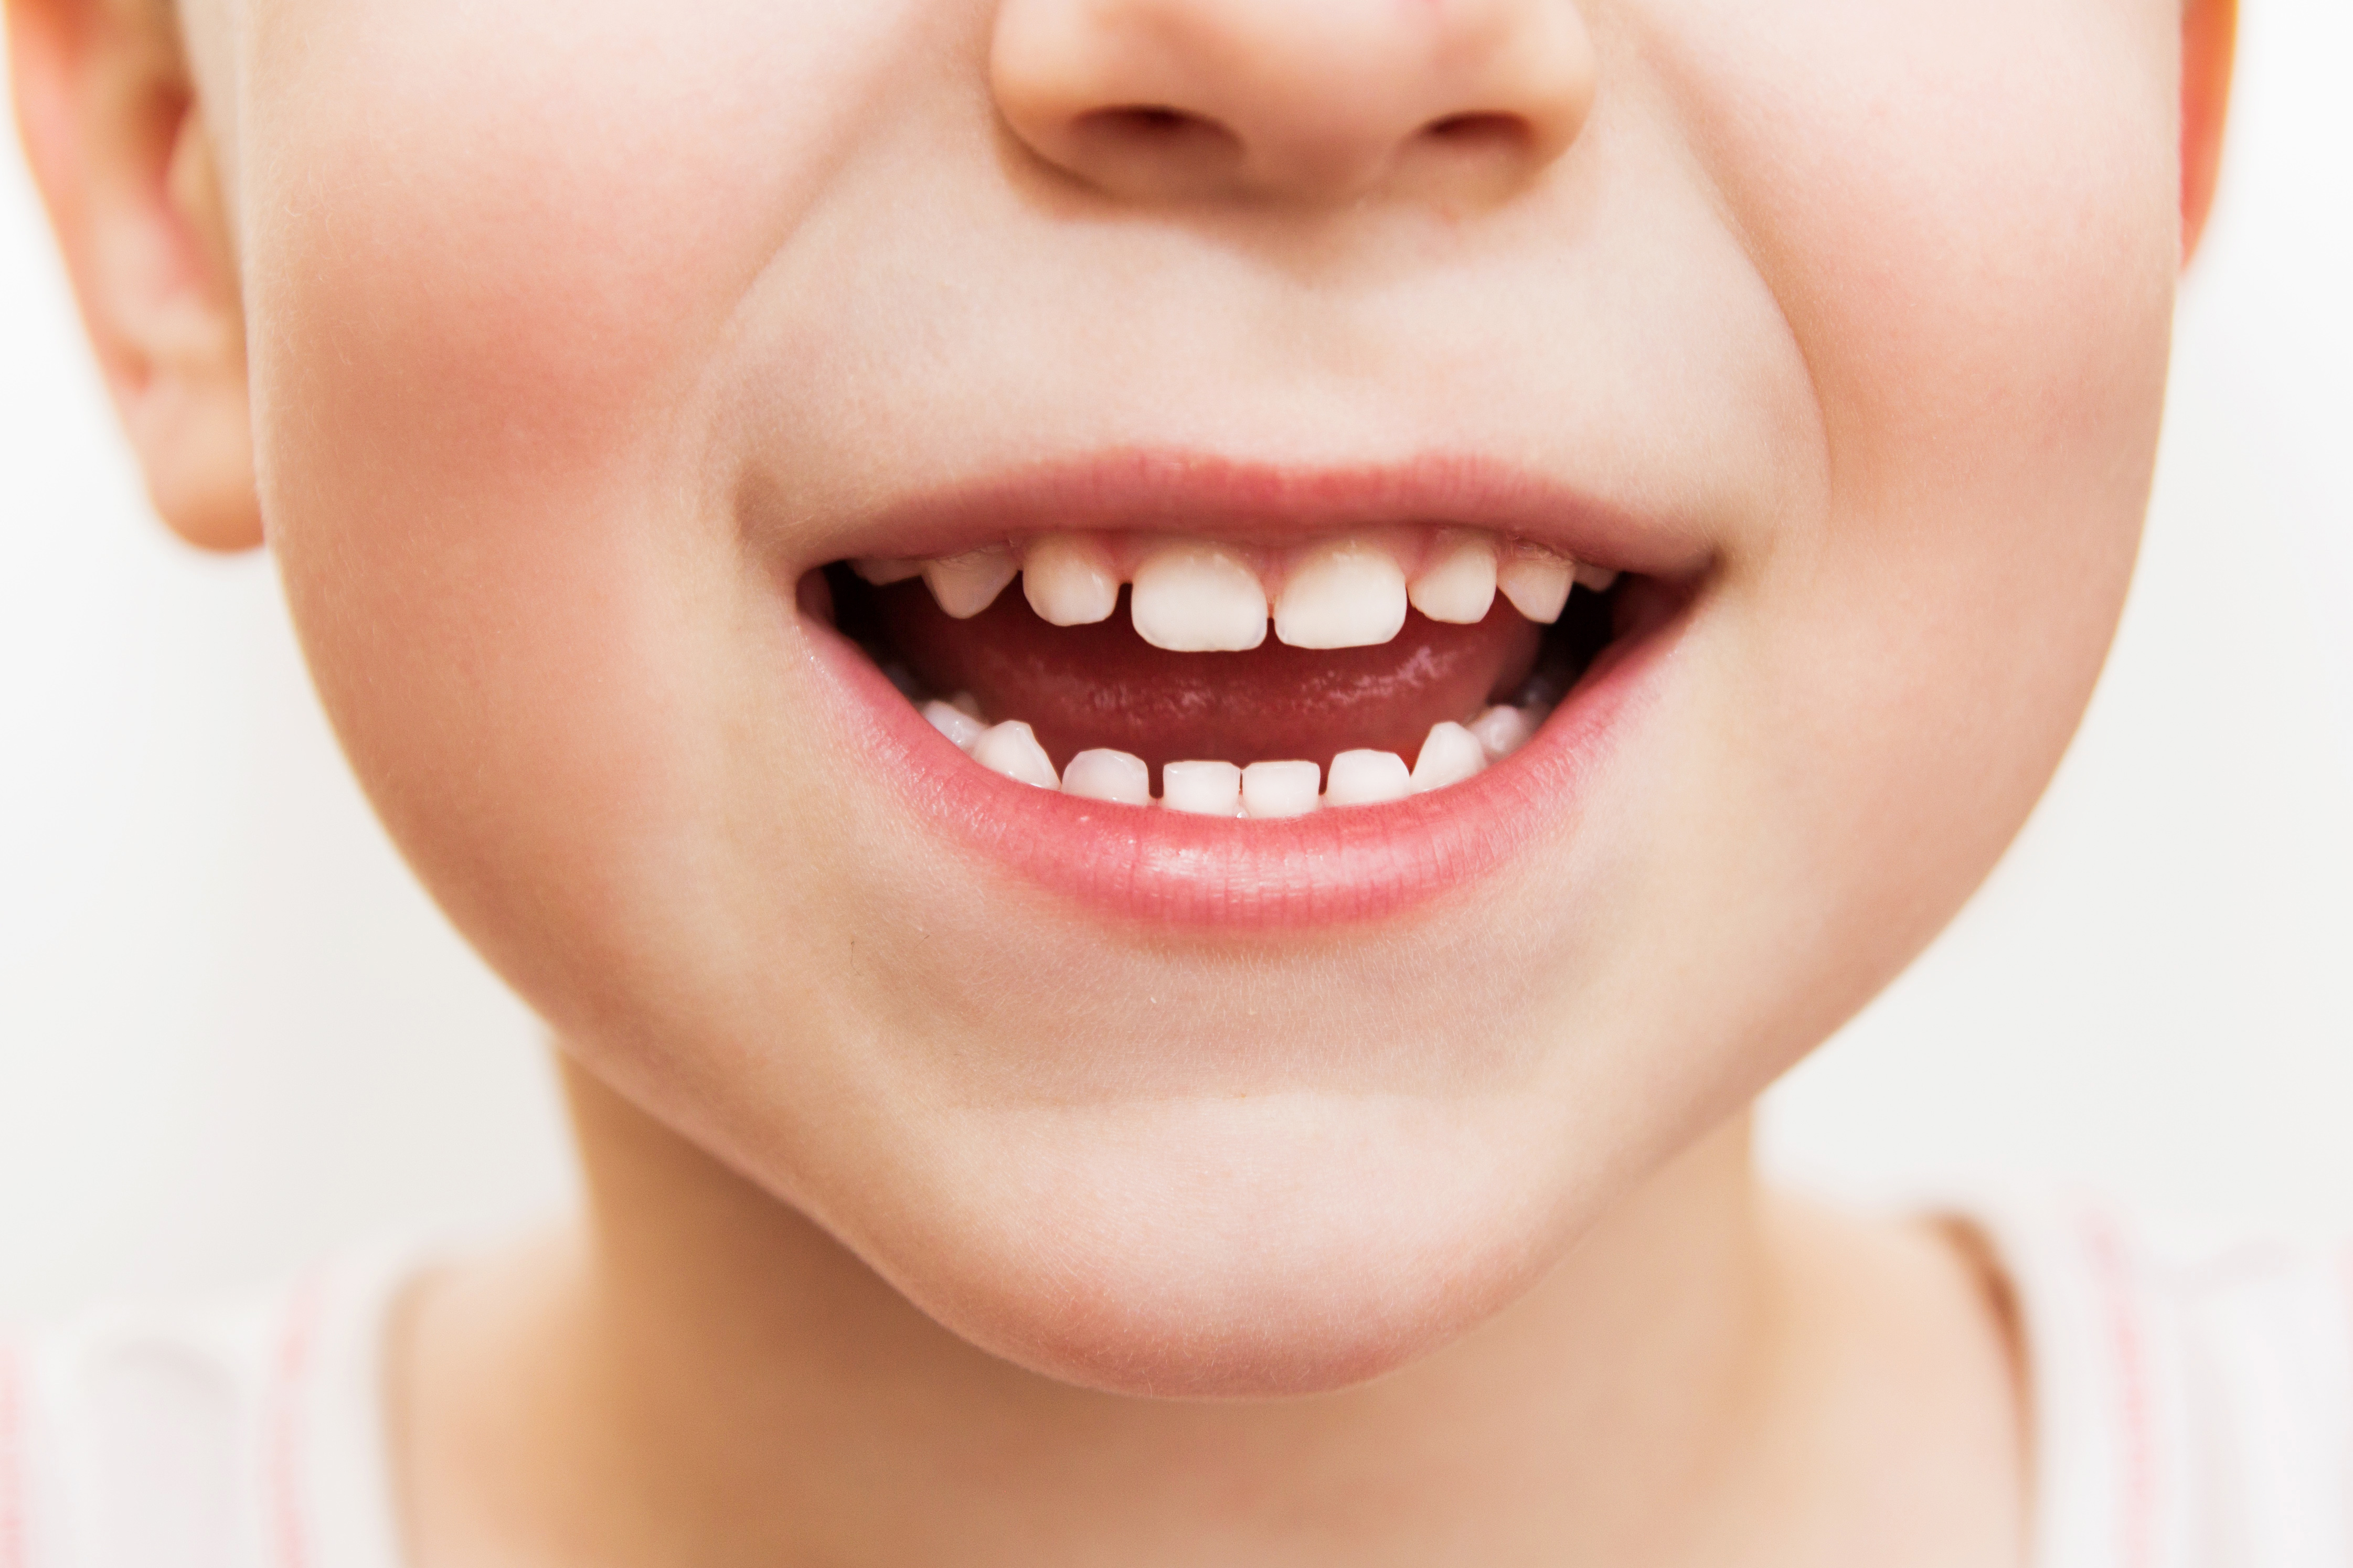 nccPA Health Foundation > Our Cause > Oral Health